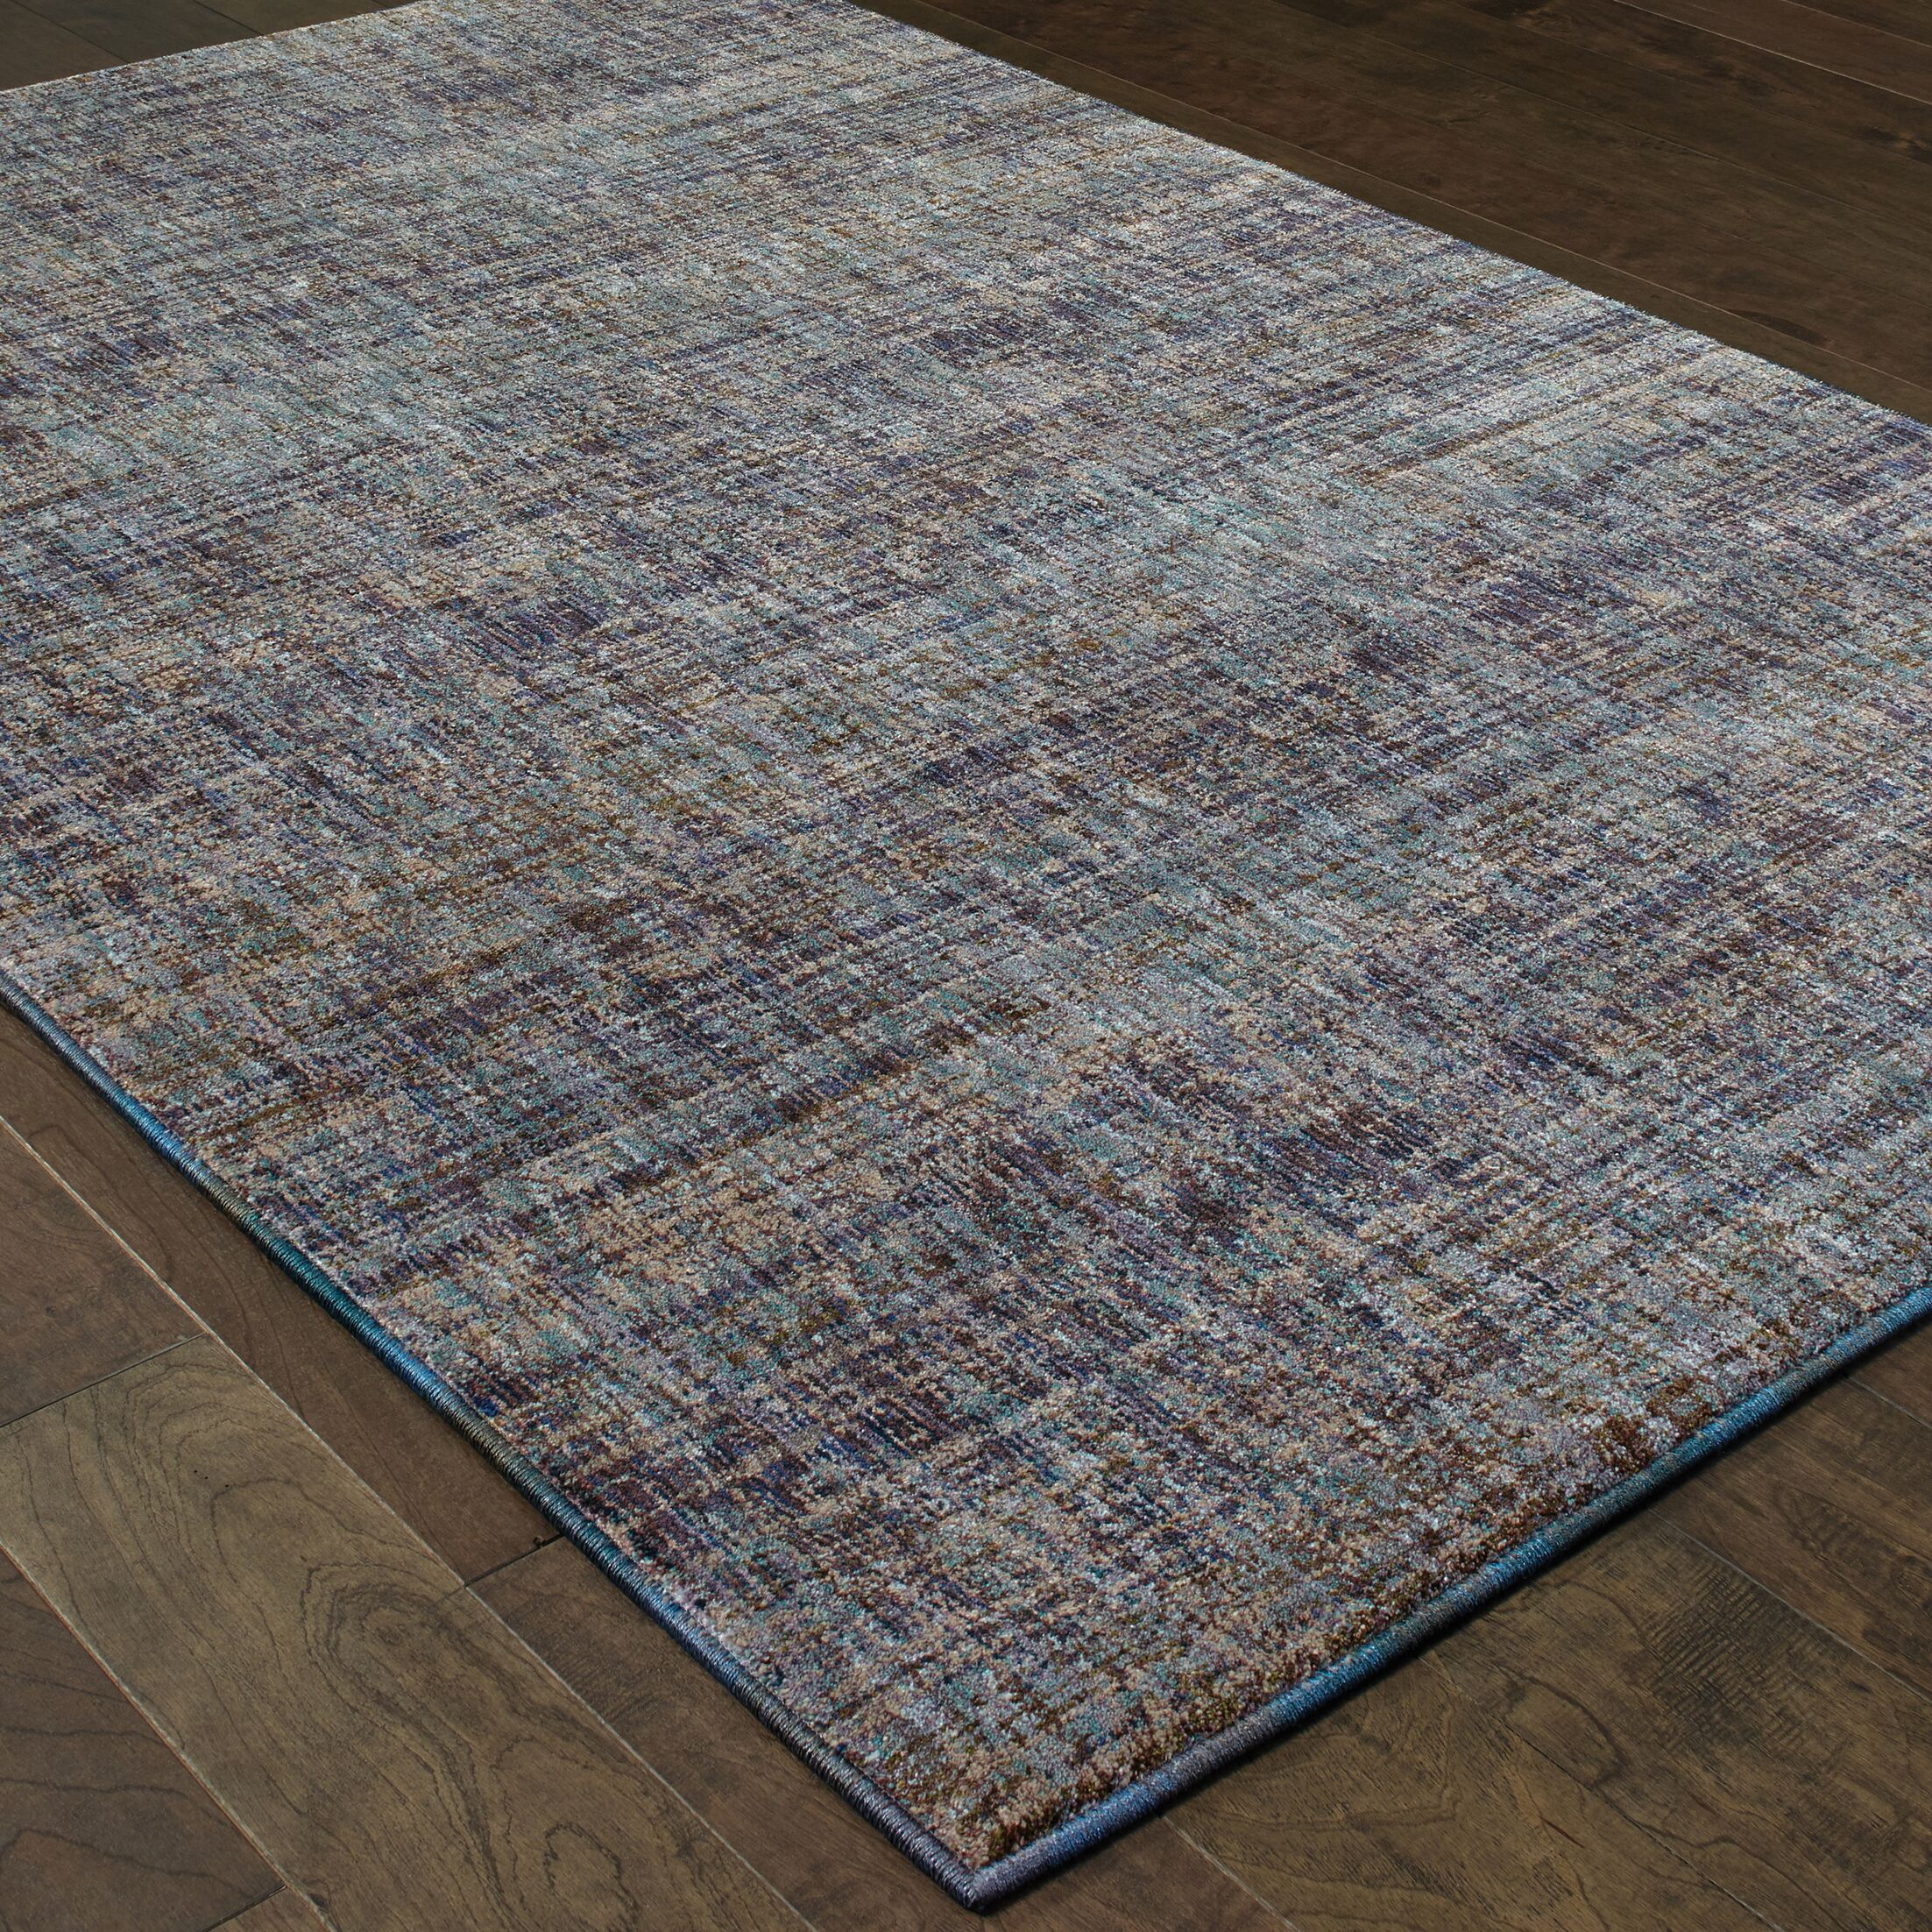 Bobby Purple/Gray Area Rug Rug Size: Rectangle 3'3